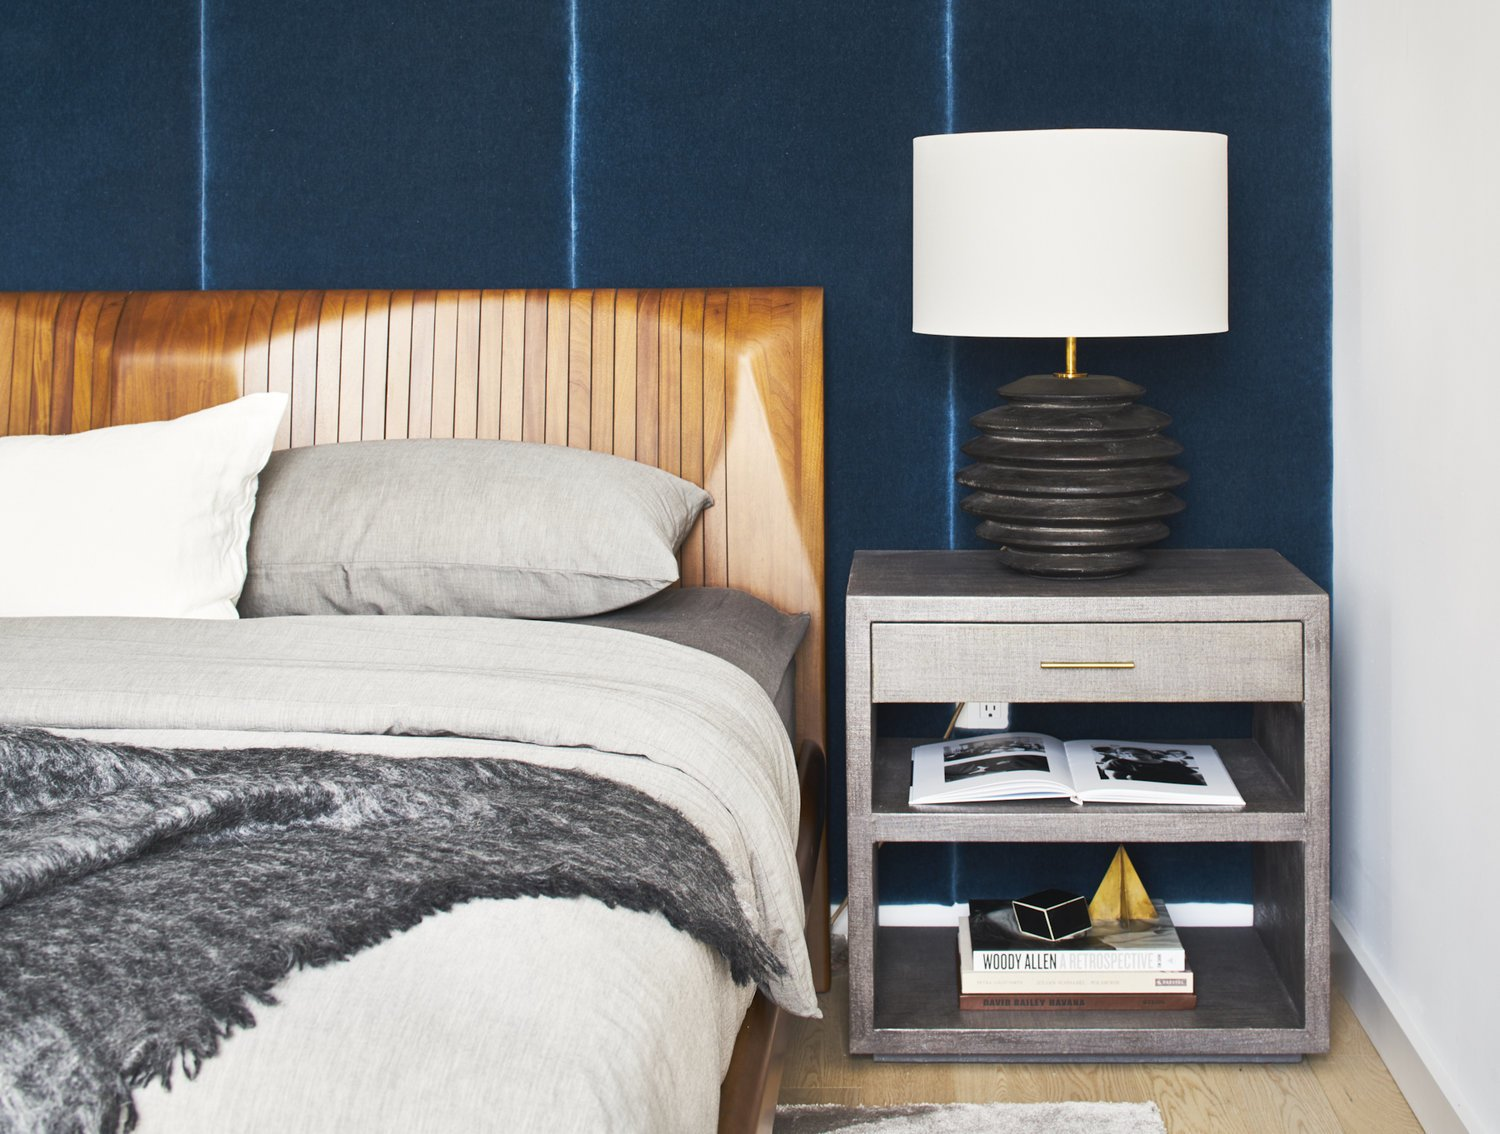 Bedroom, Night Stands, Table Lighting, Bed, Light Hardwood Floor, Shelves, and Lamps Hague Blue wall panels in master bedroom  Seaholm Custom Condo by SLIC Design